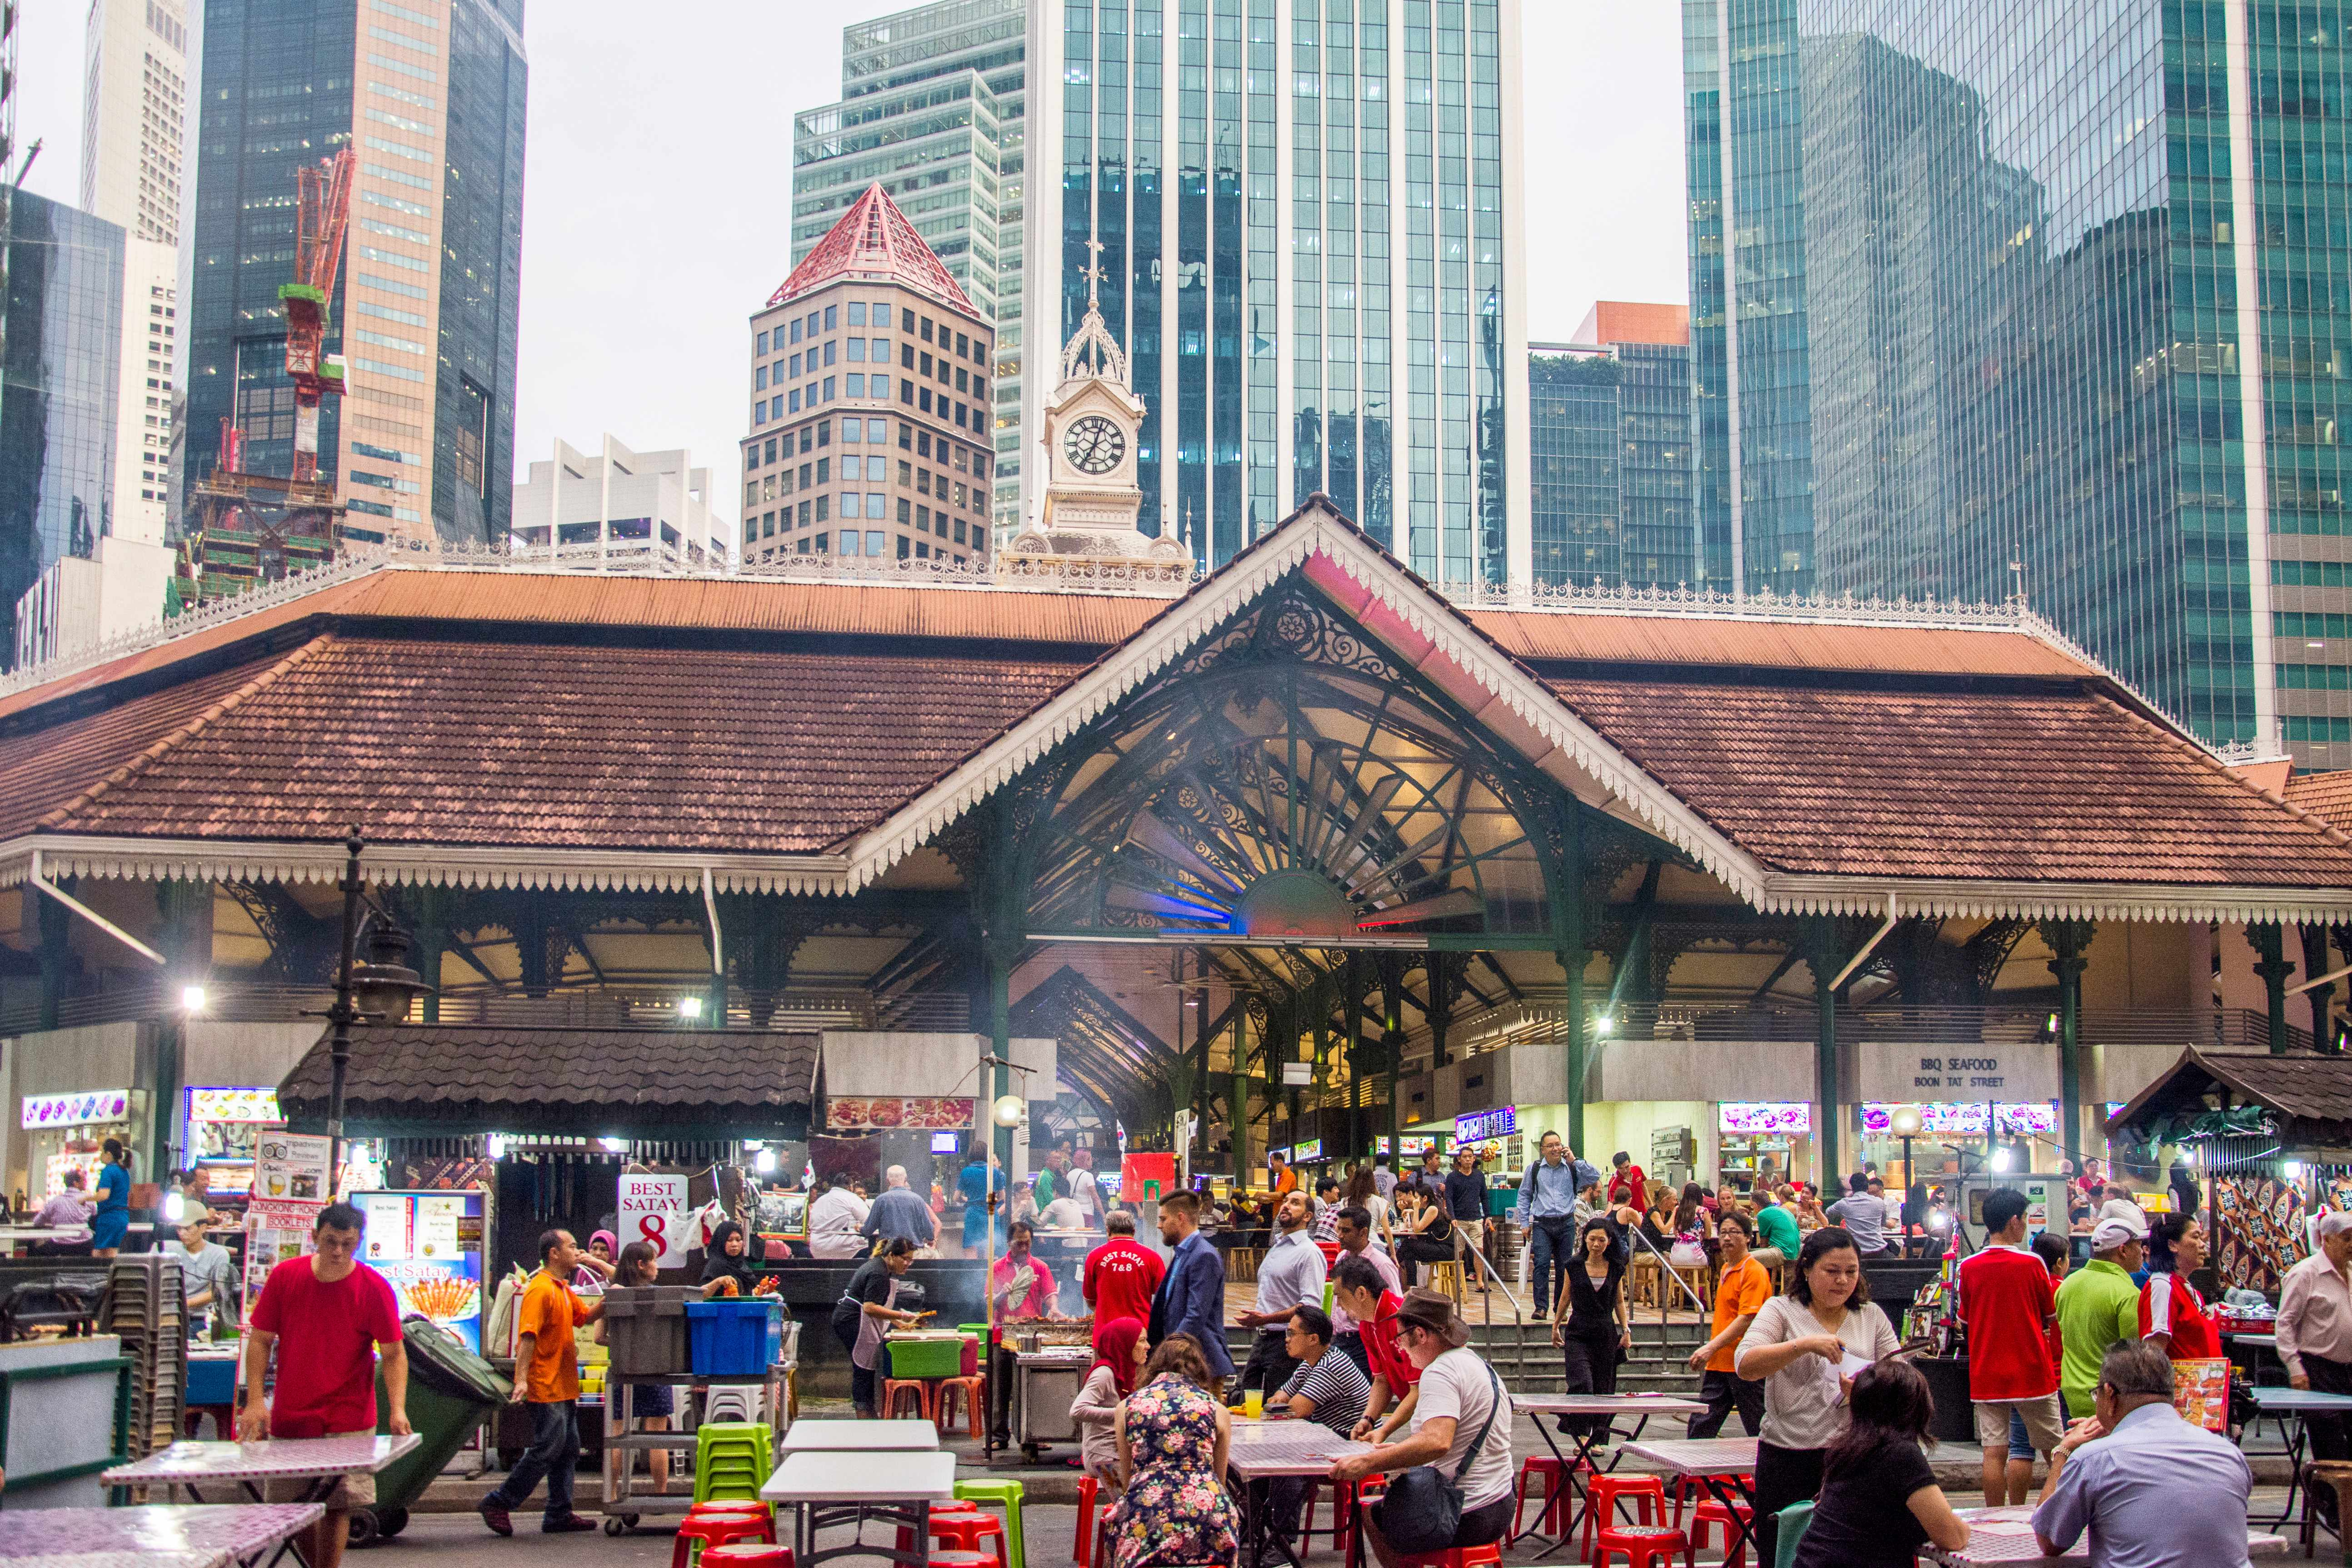 Lau Pa Sat food court (1894) on Raffles Quay in the Financial District, Singapore